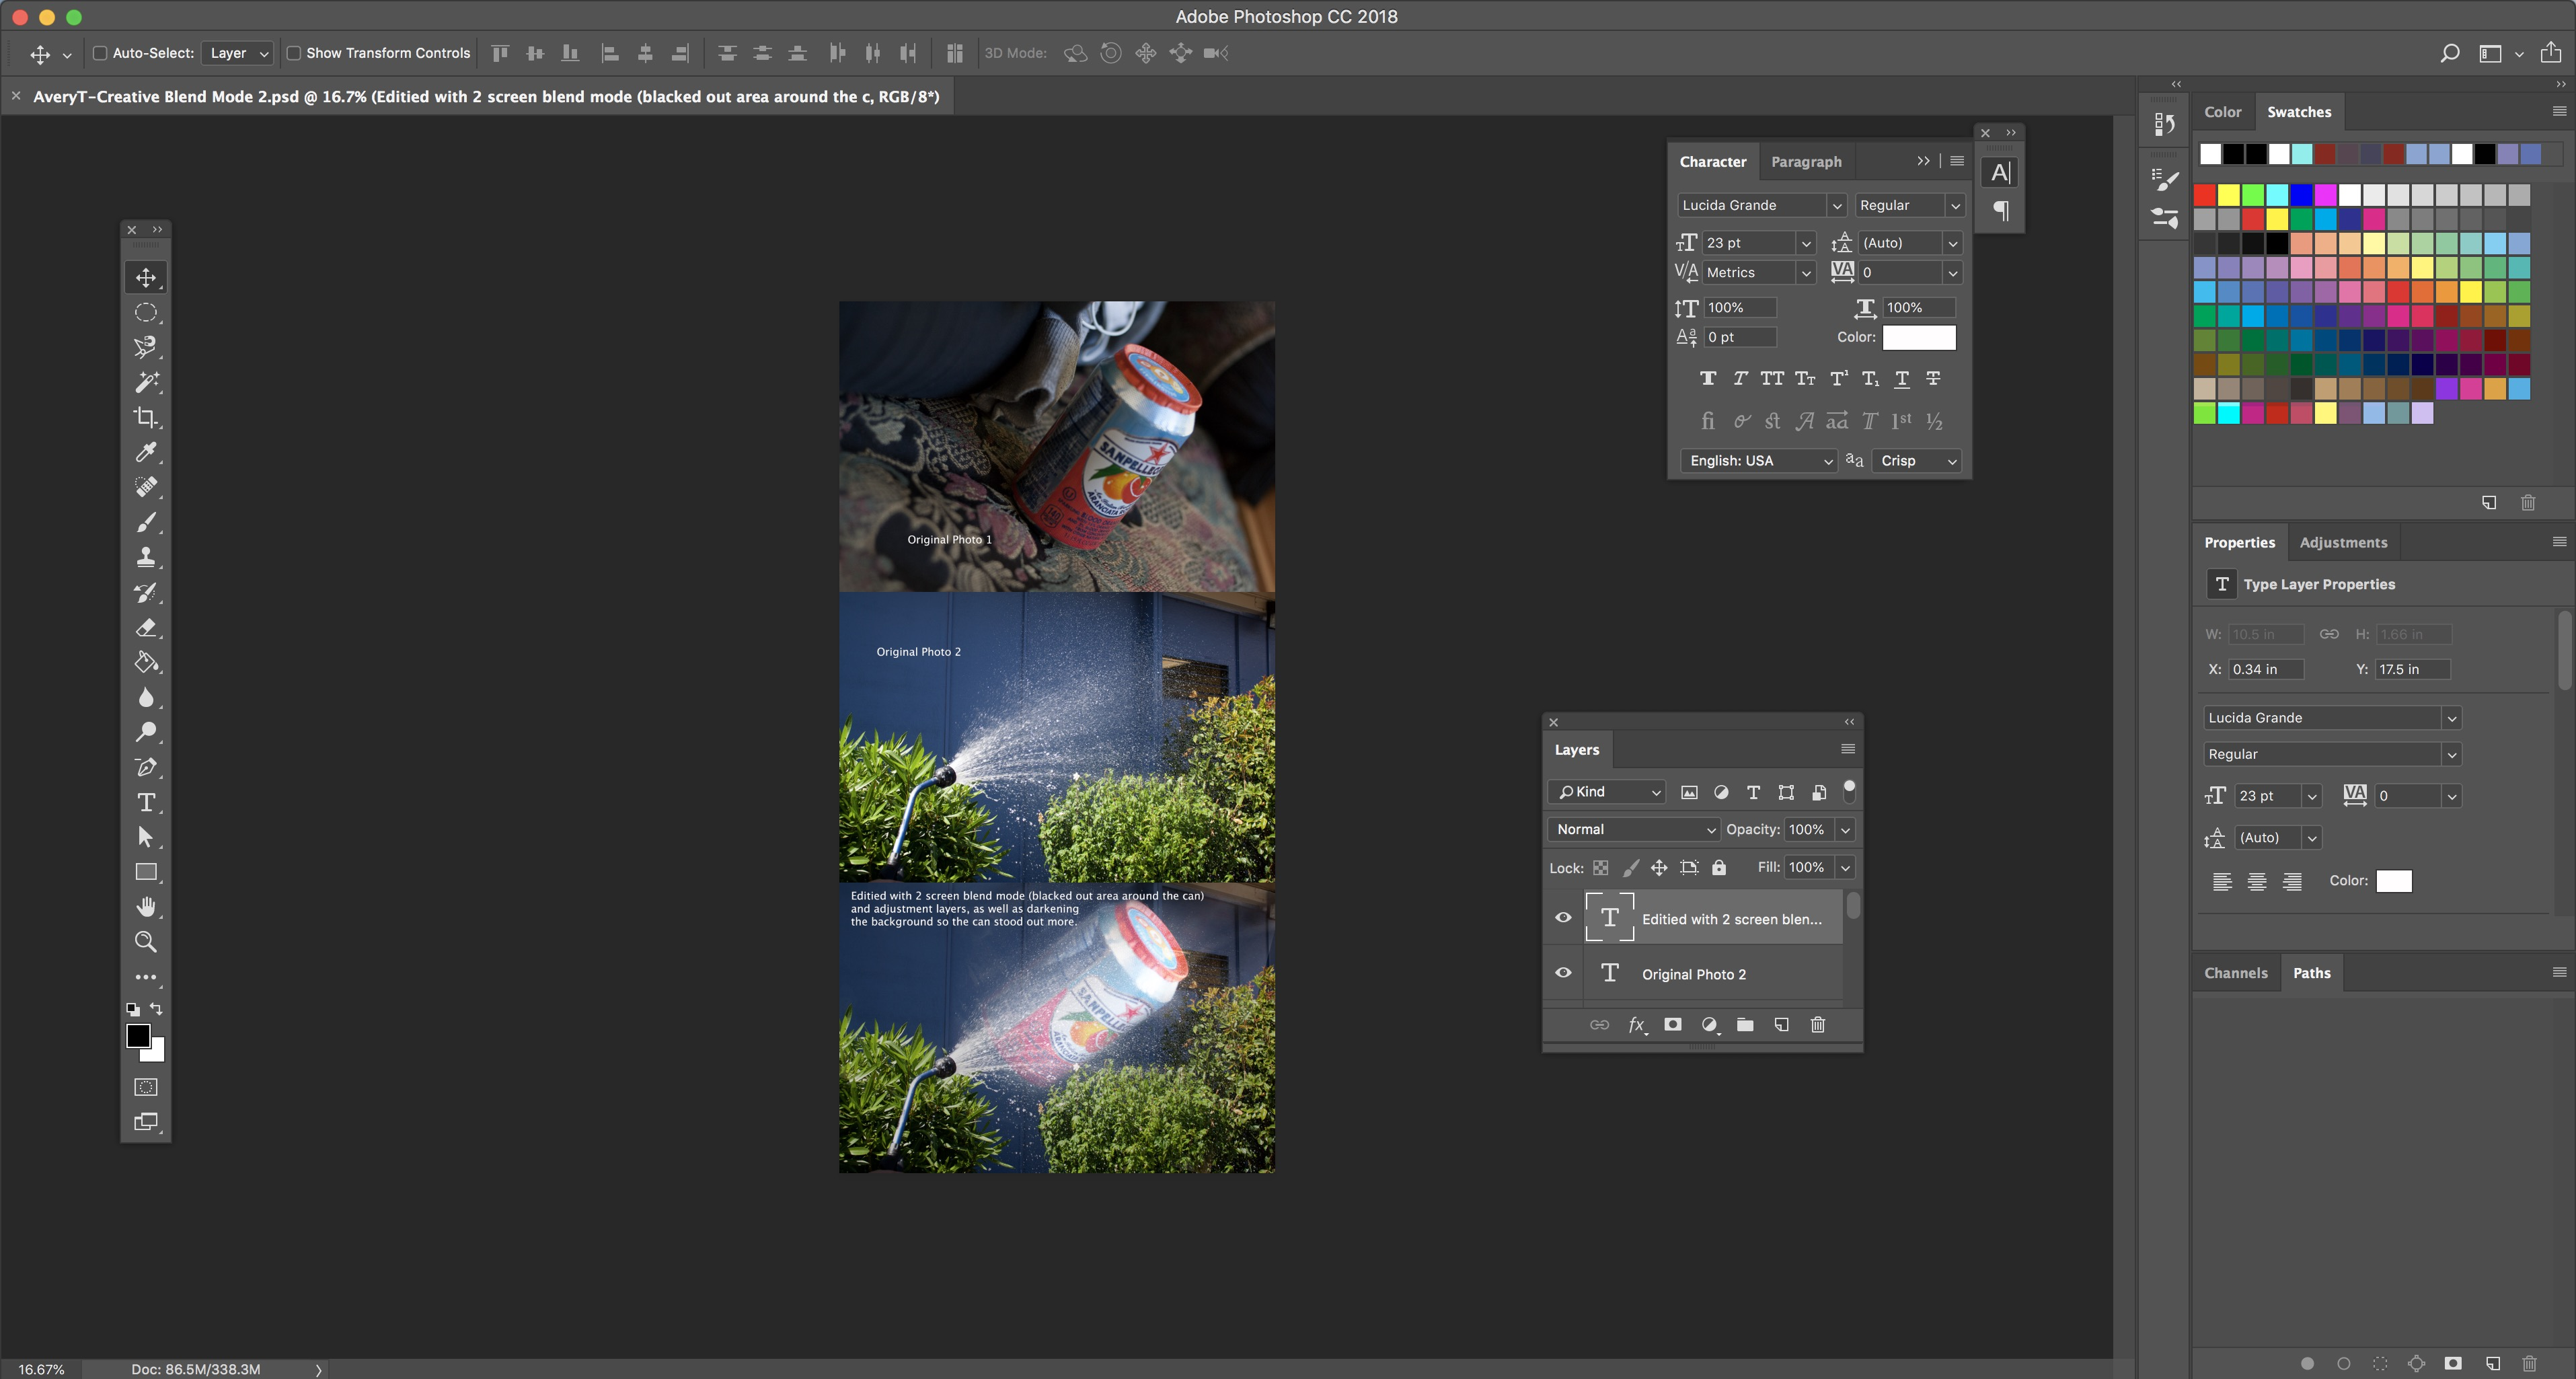 Adobe Photoshop Workspace for Creative Blend Modes